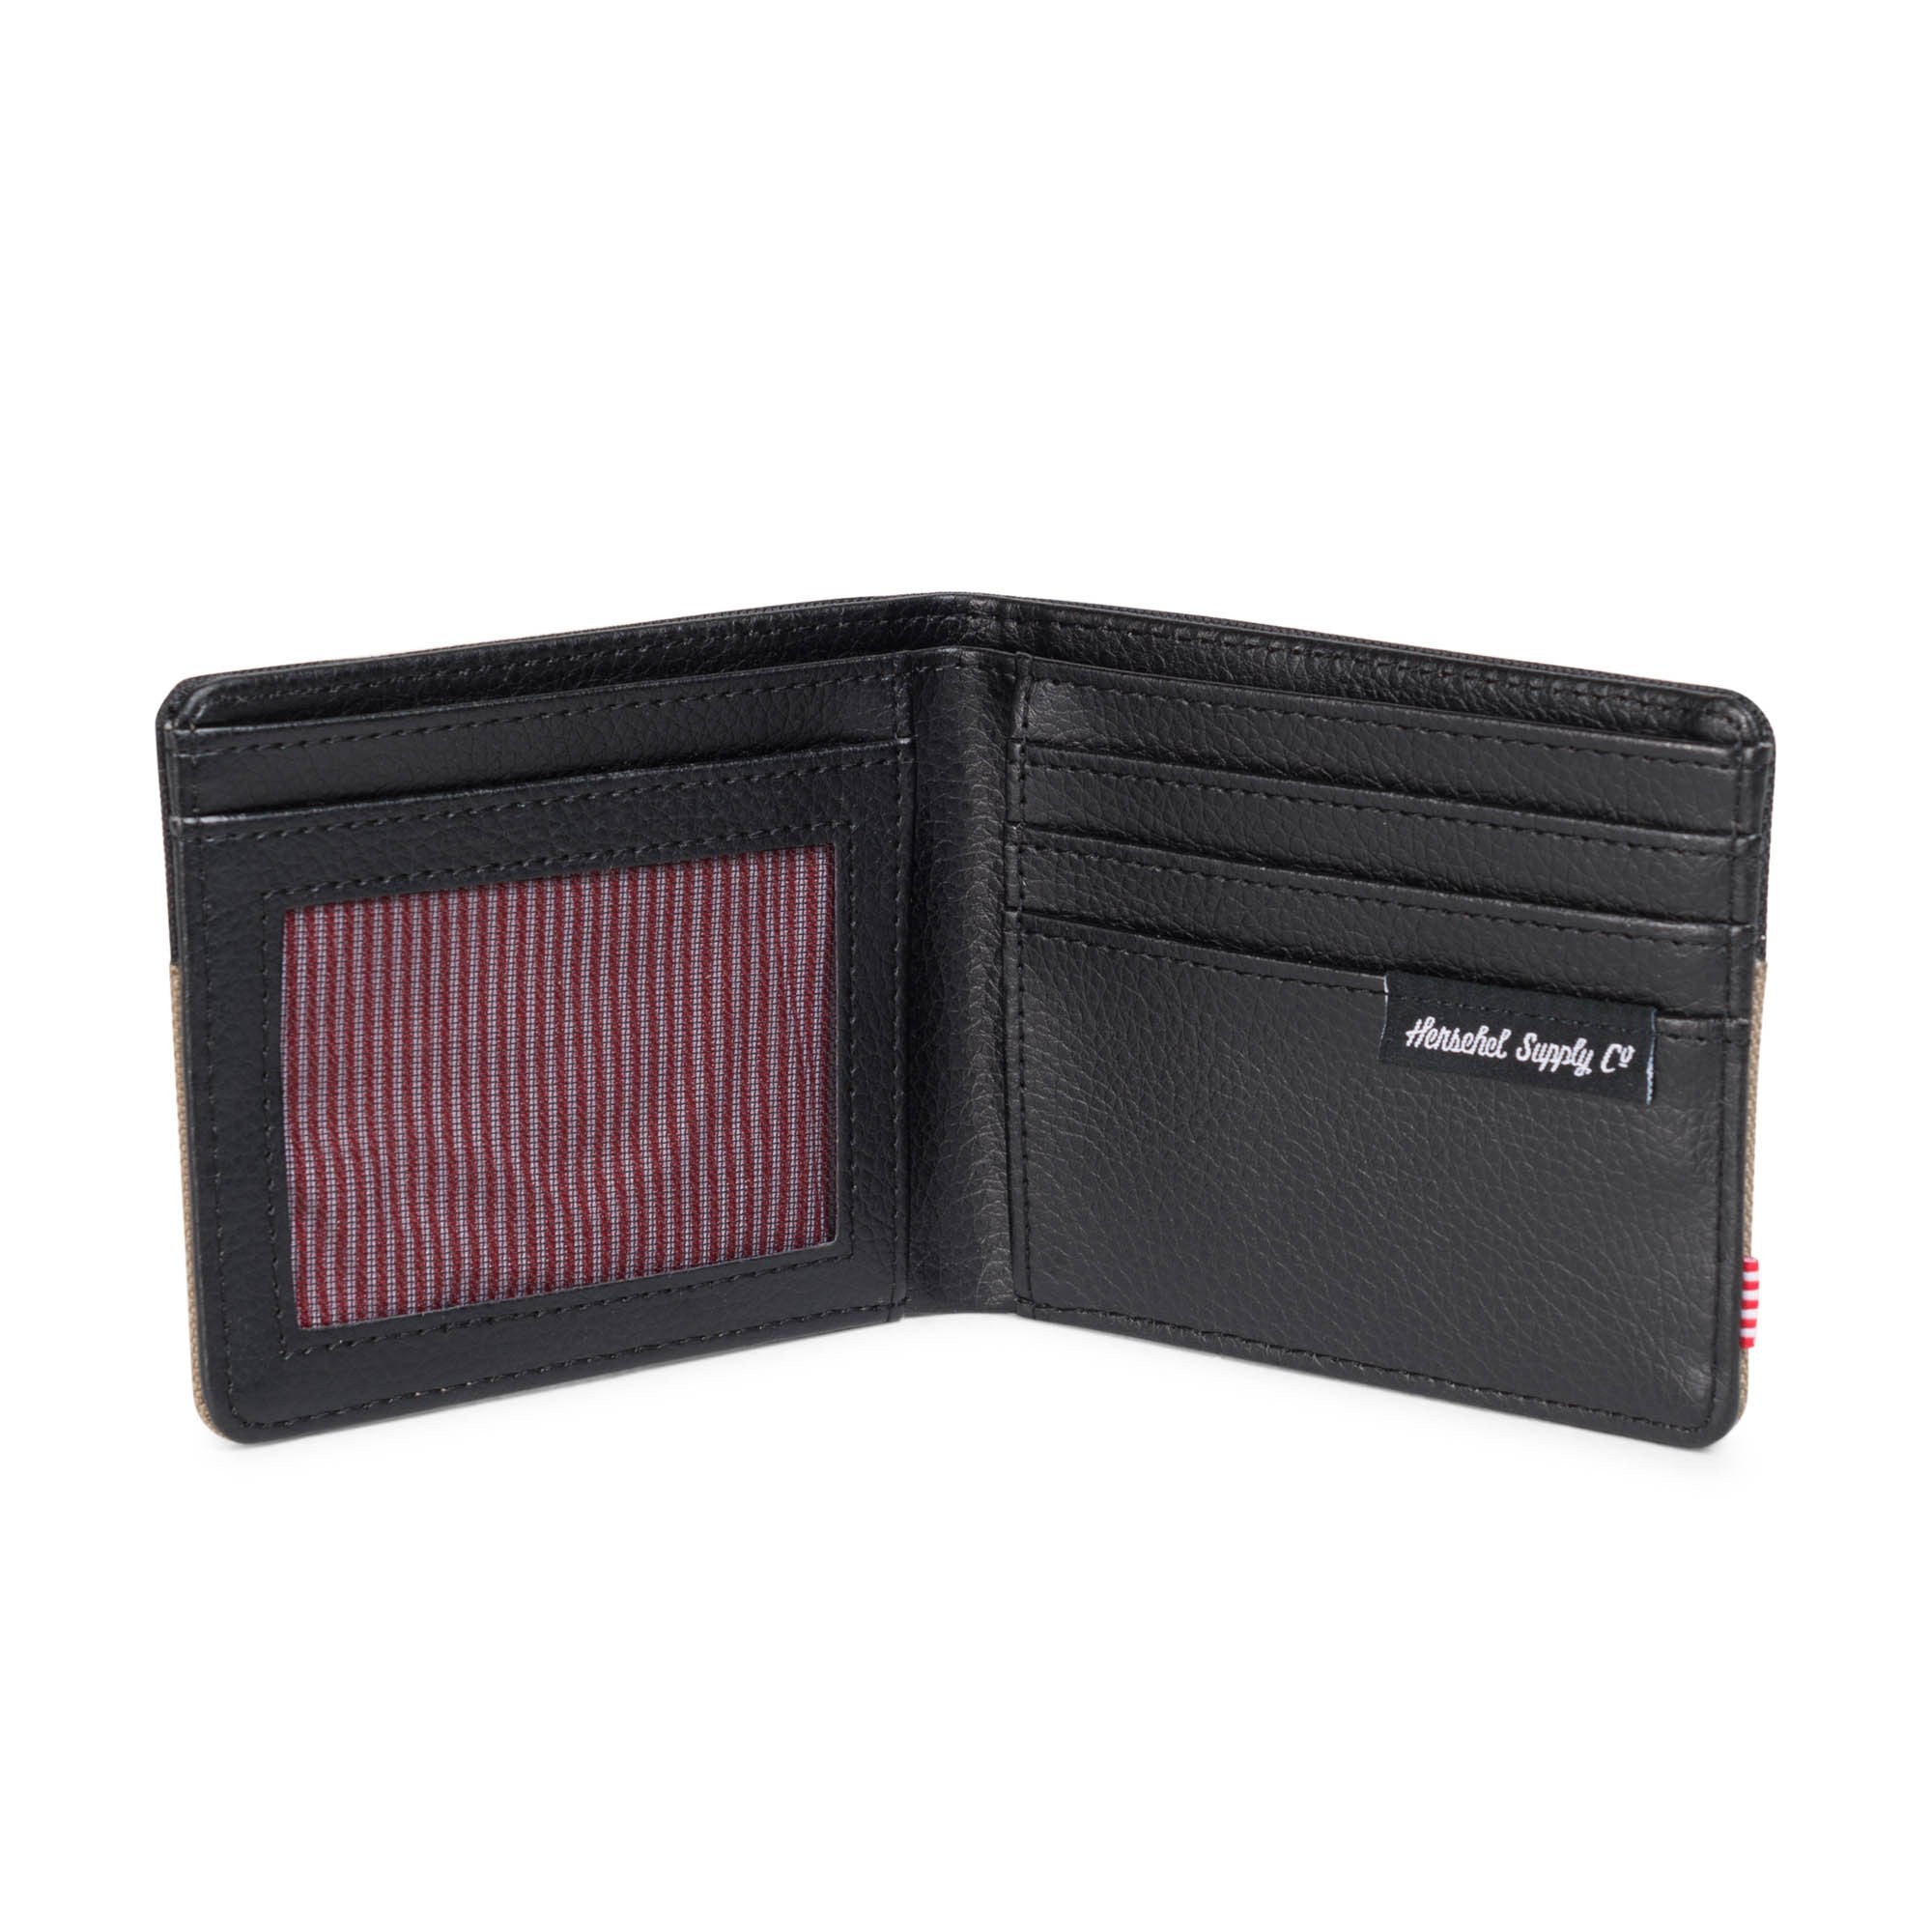 Herschel Hank Wallet Lead/Black